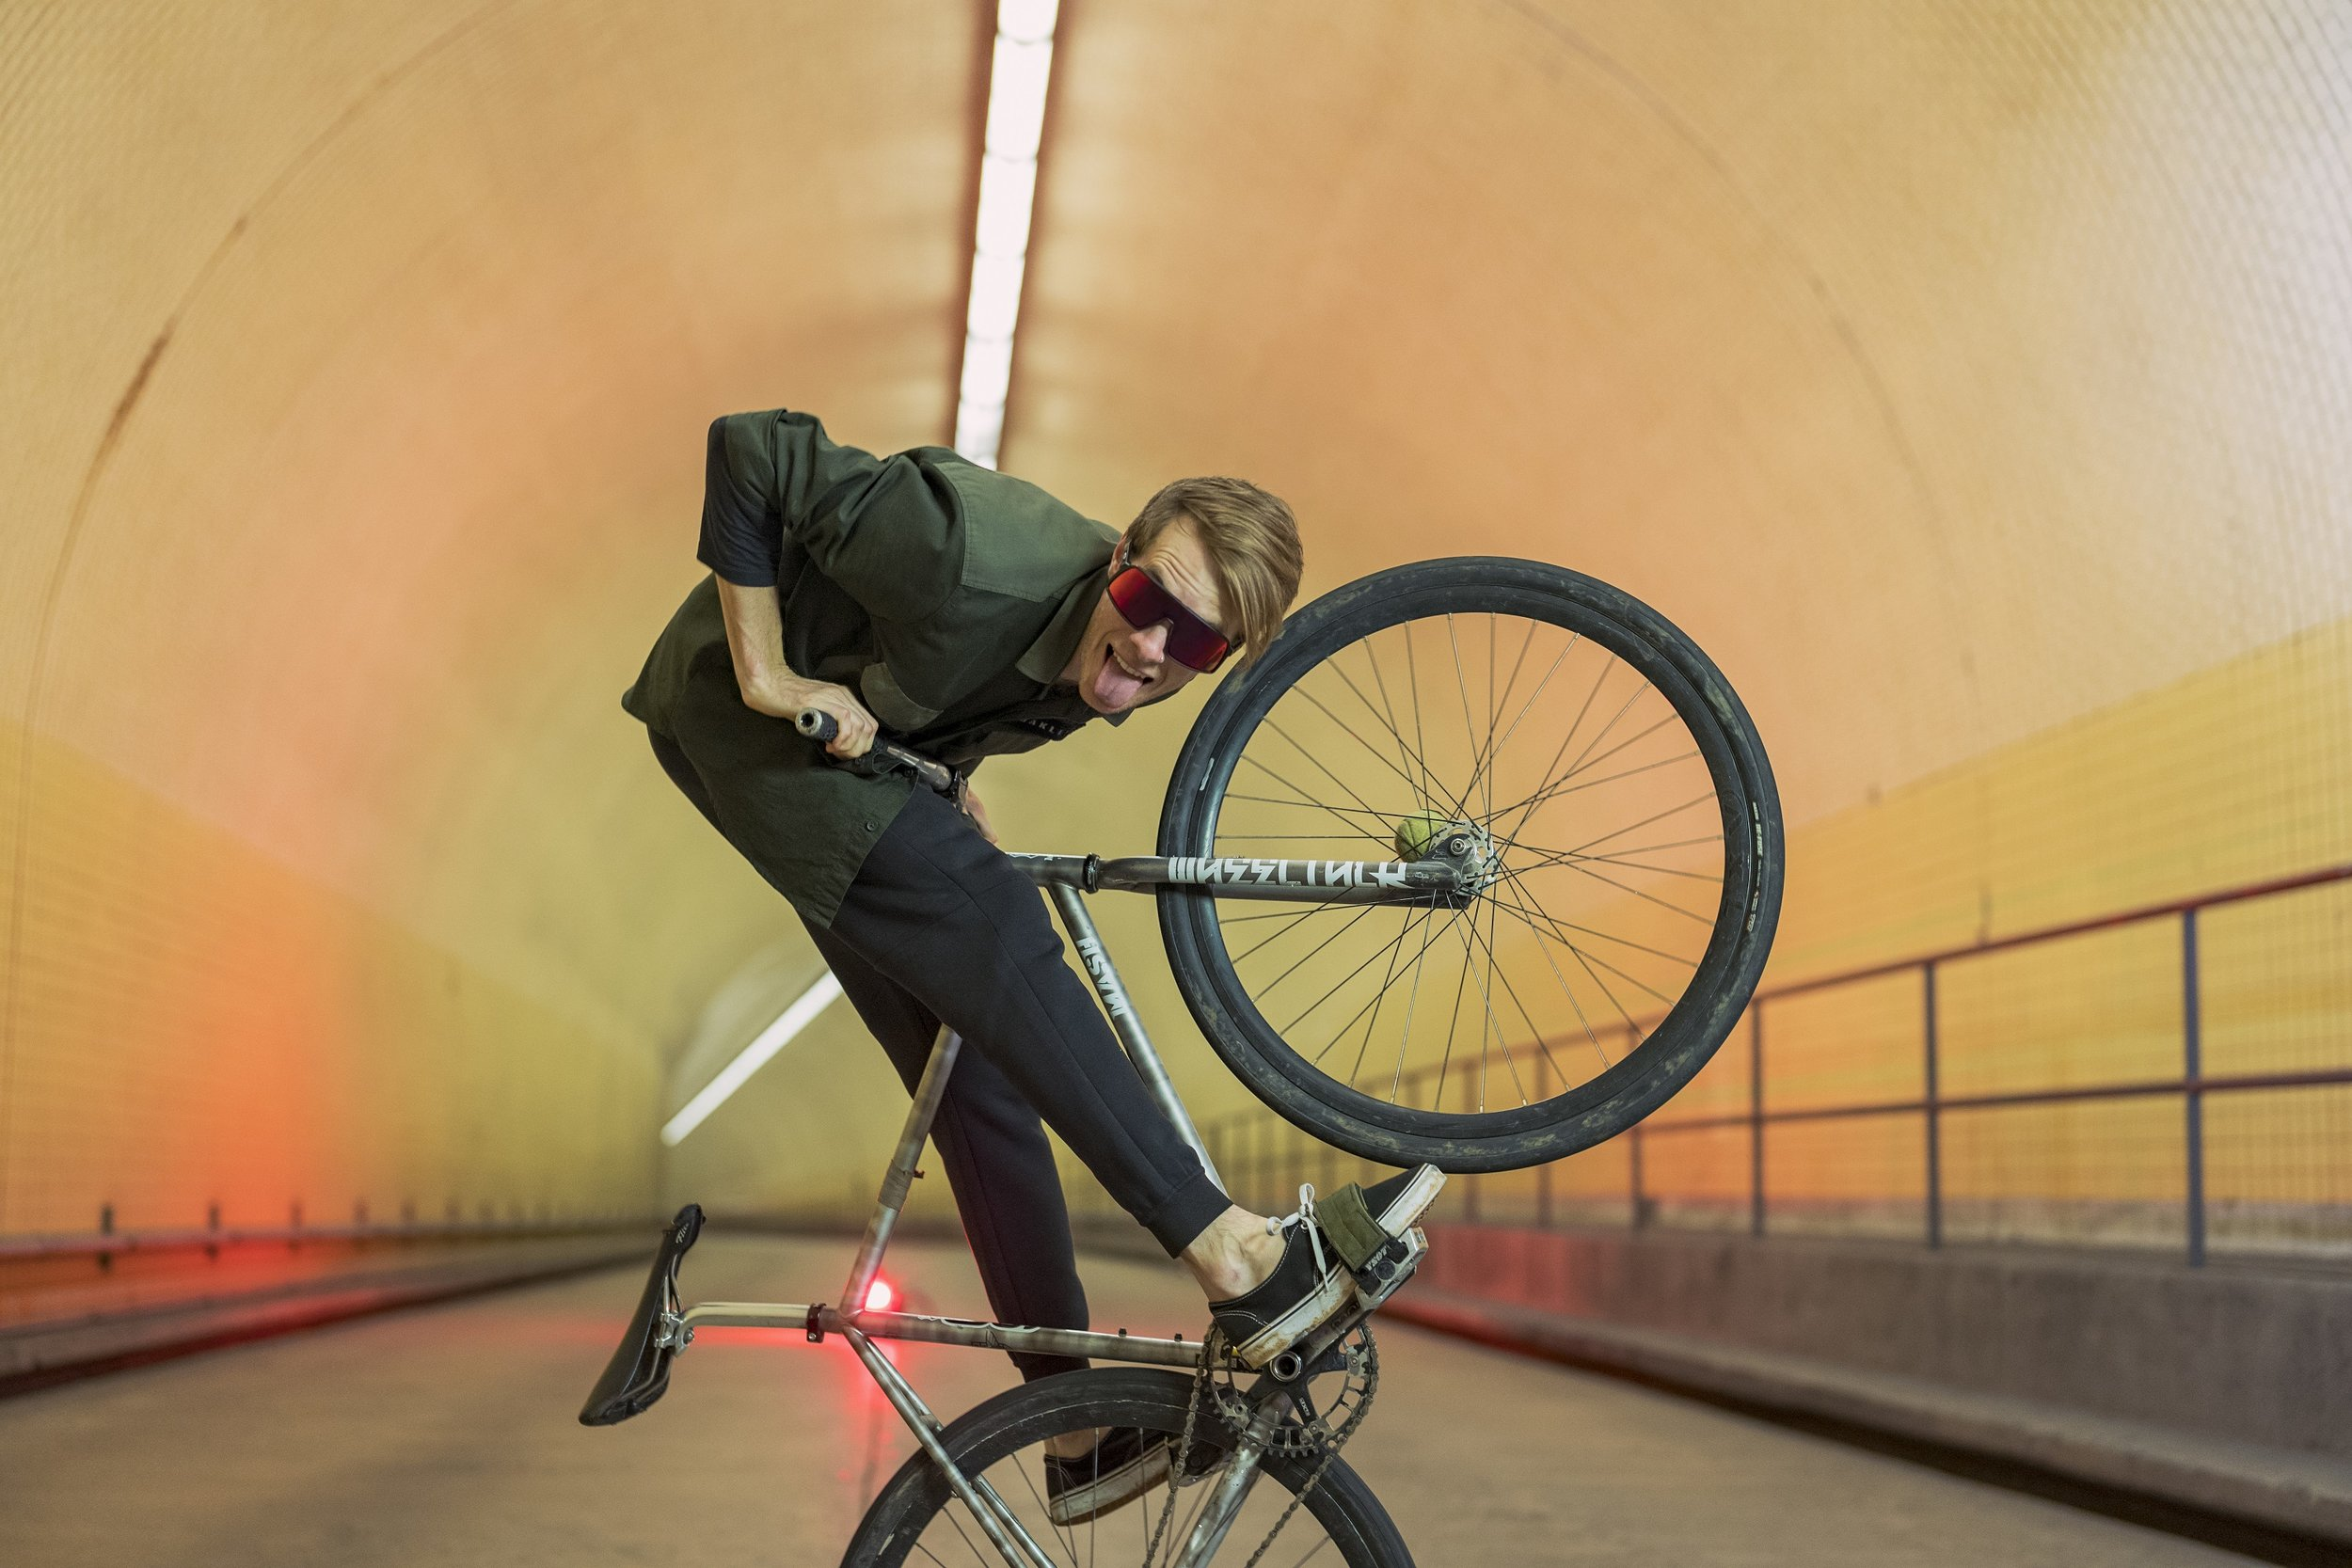 Oakley Sutro were developed for urban cycling.